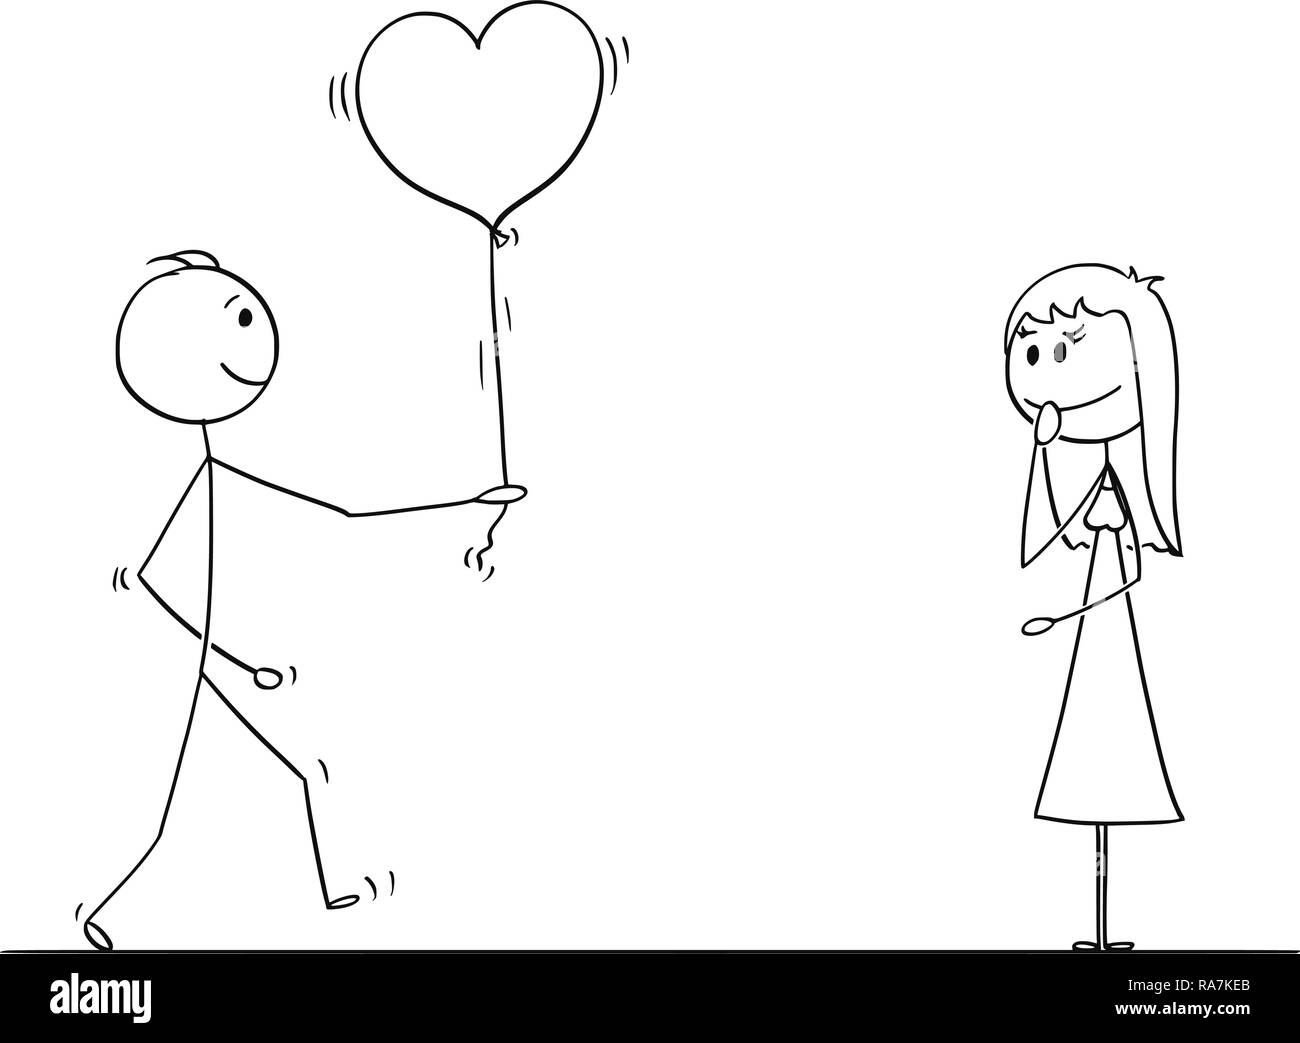 Stick Character Cartoon of Loving Man or Boy Giving Balloon Heart to